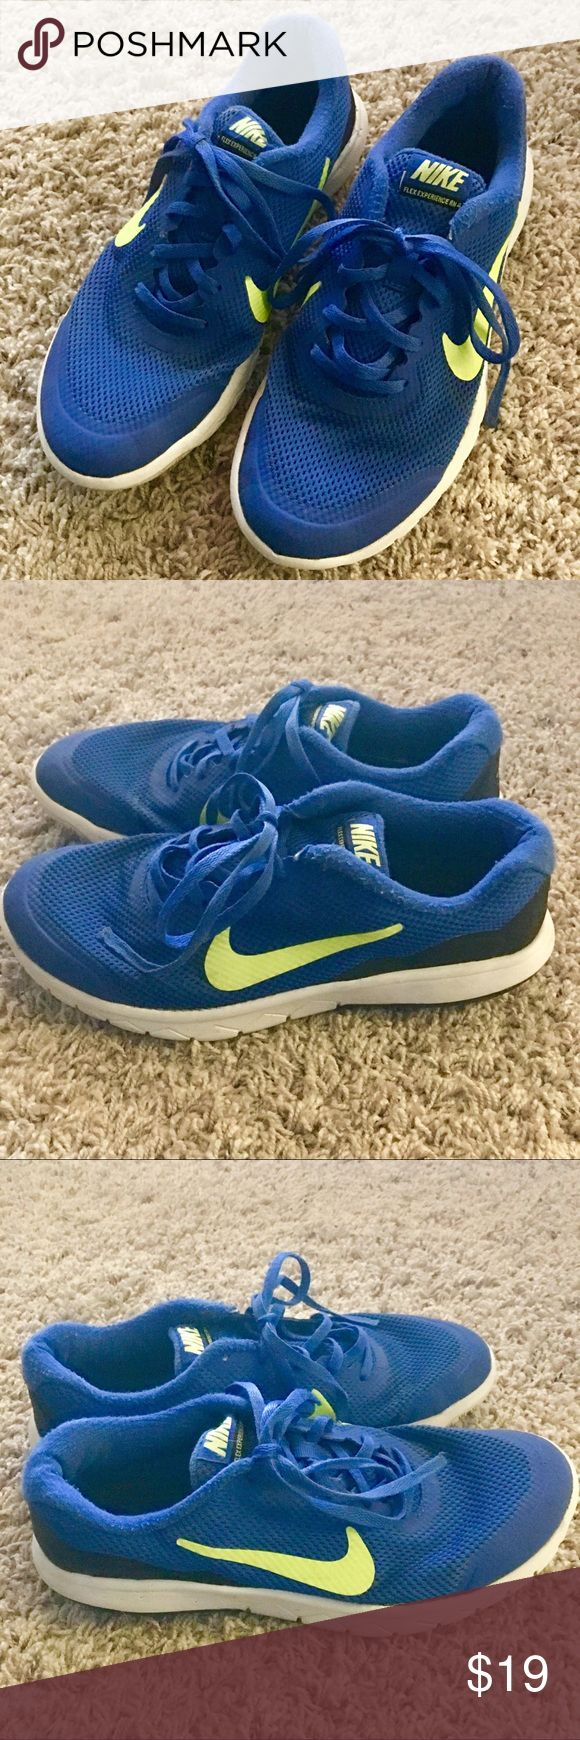 Boys NIKE Flex Experience Tennis Shoes Nike Flex Experience Good used condition Youth SZ 6 Blue/Neon green Nike Shoes Sneakers